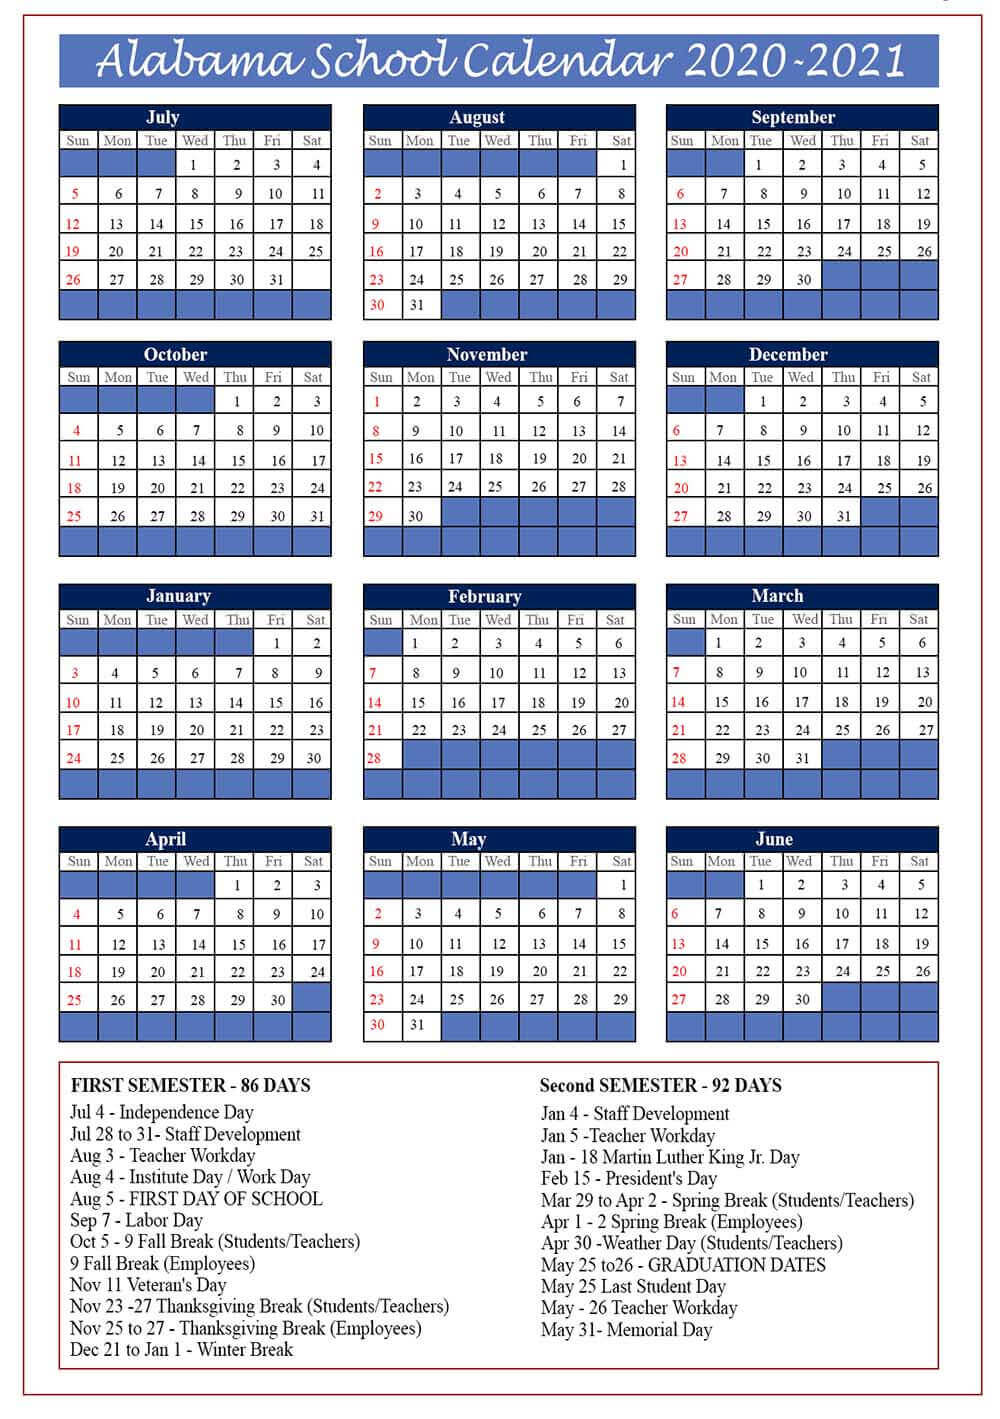 Alabama Public School Calendar 2020